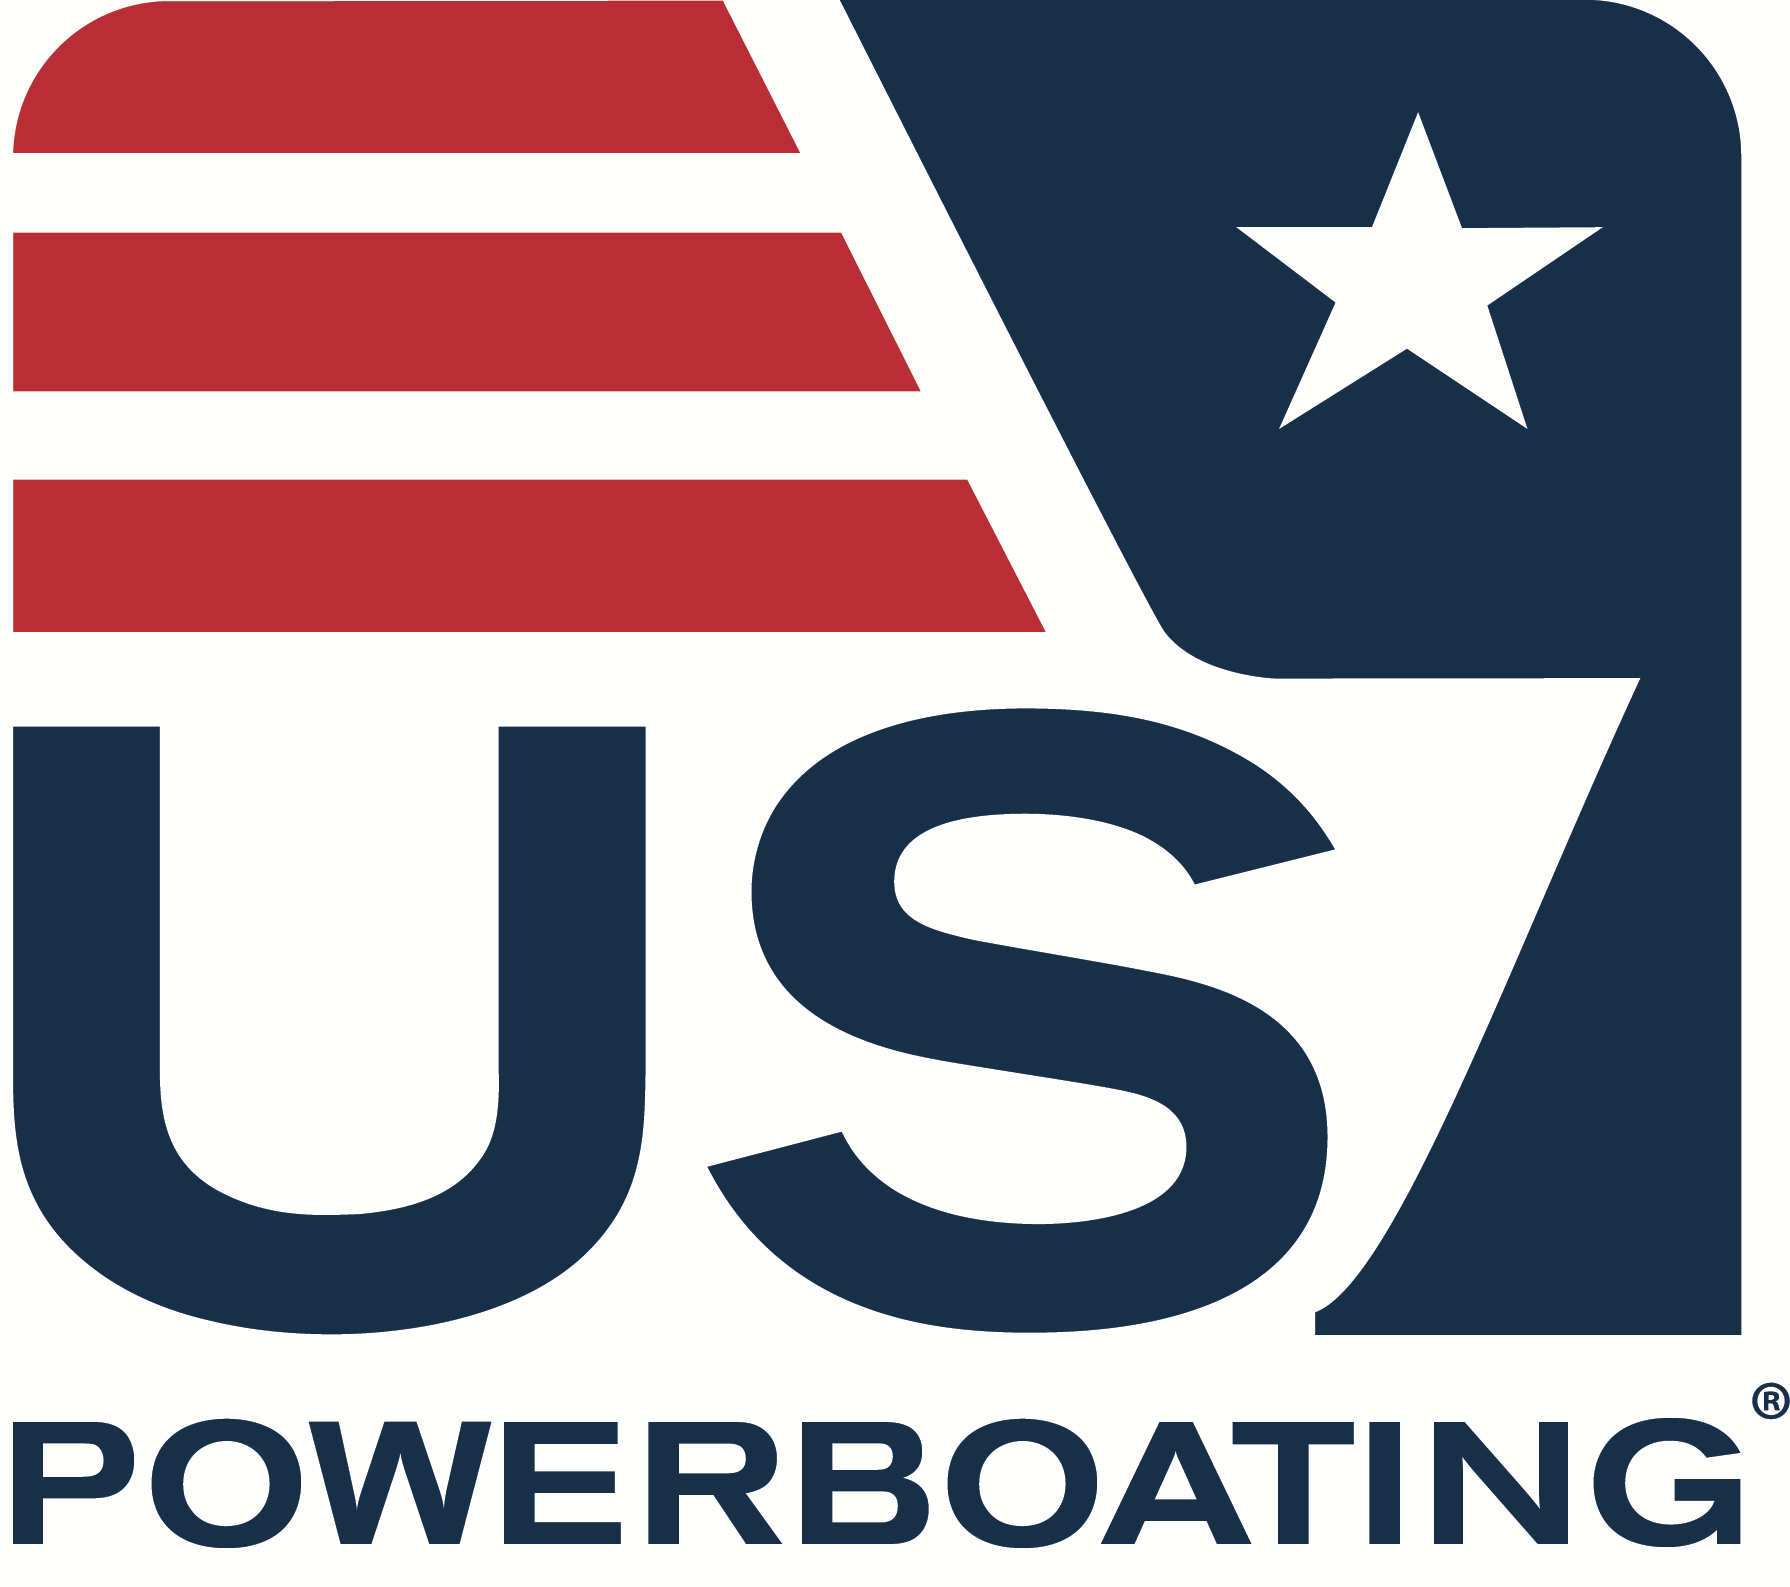 uspowerboating_color_new.png